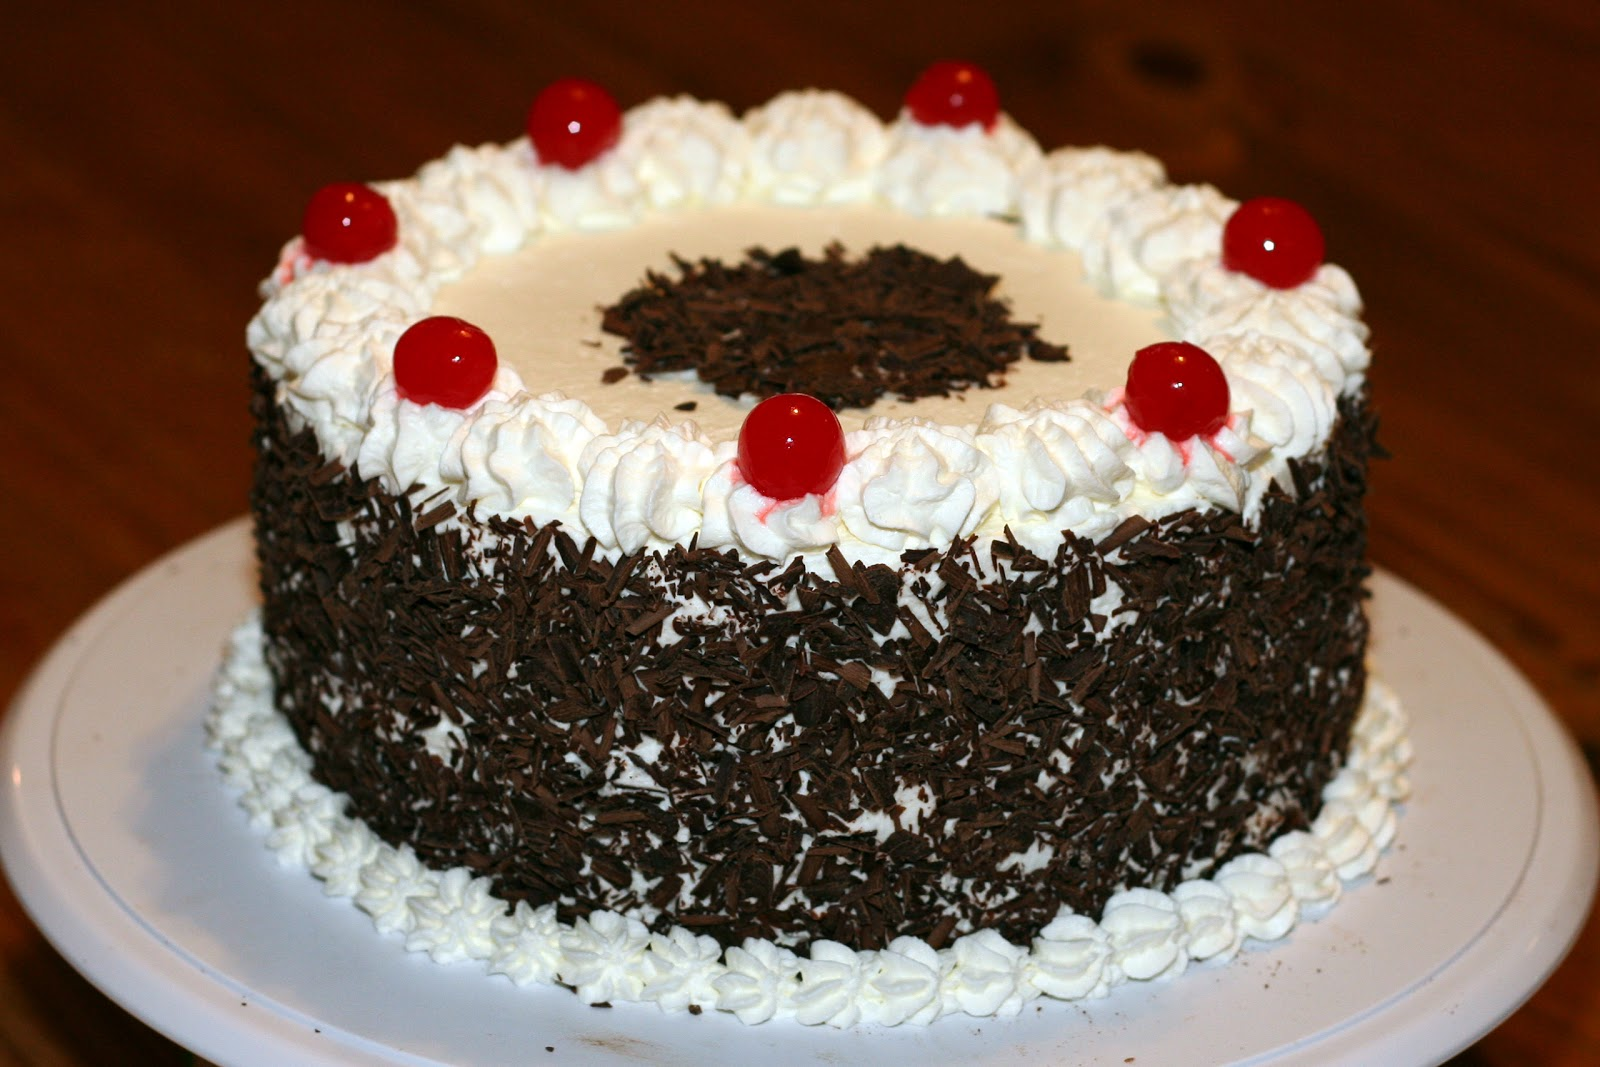 Best Black Forest Cake Images : Cakes by Nicola: Black Forest Cake